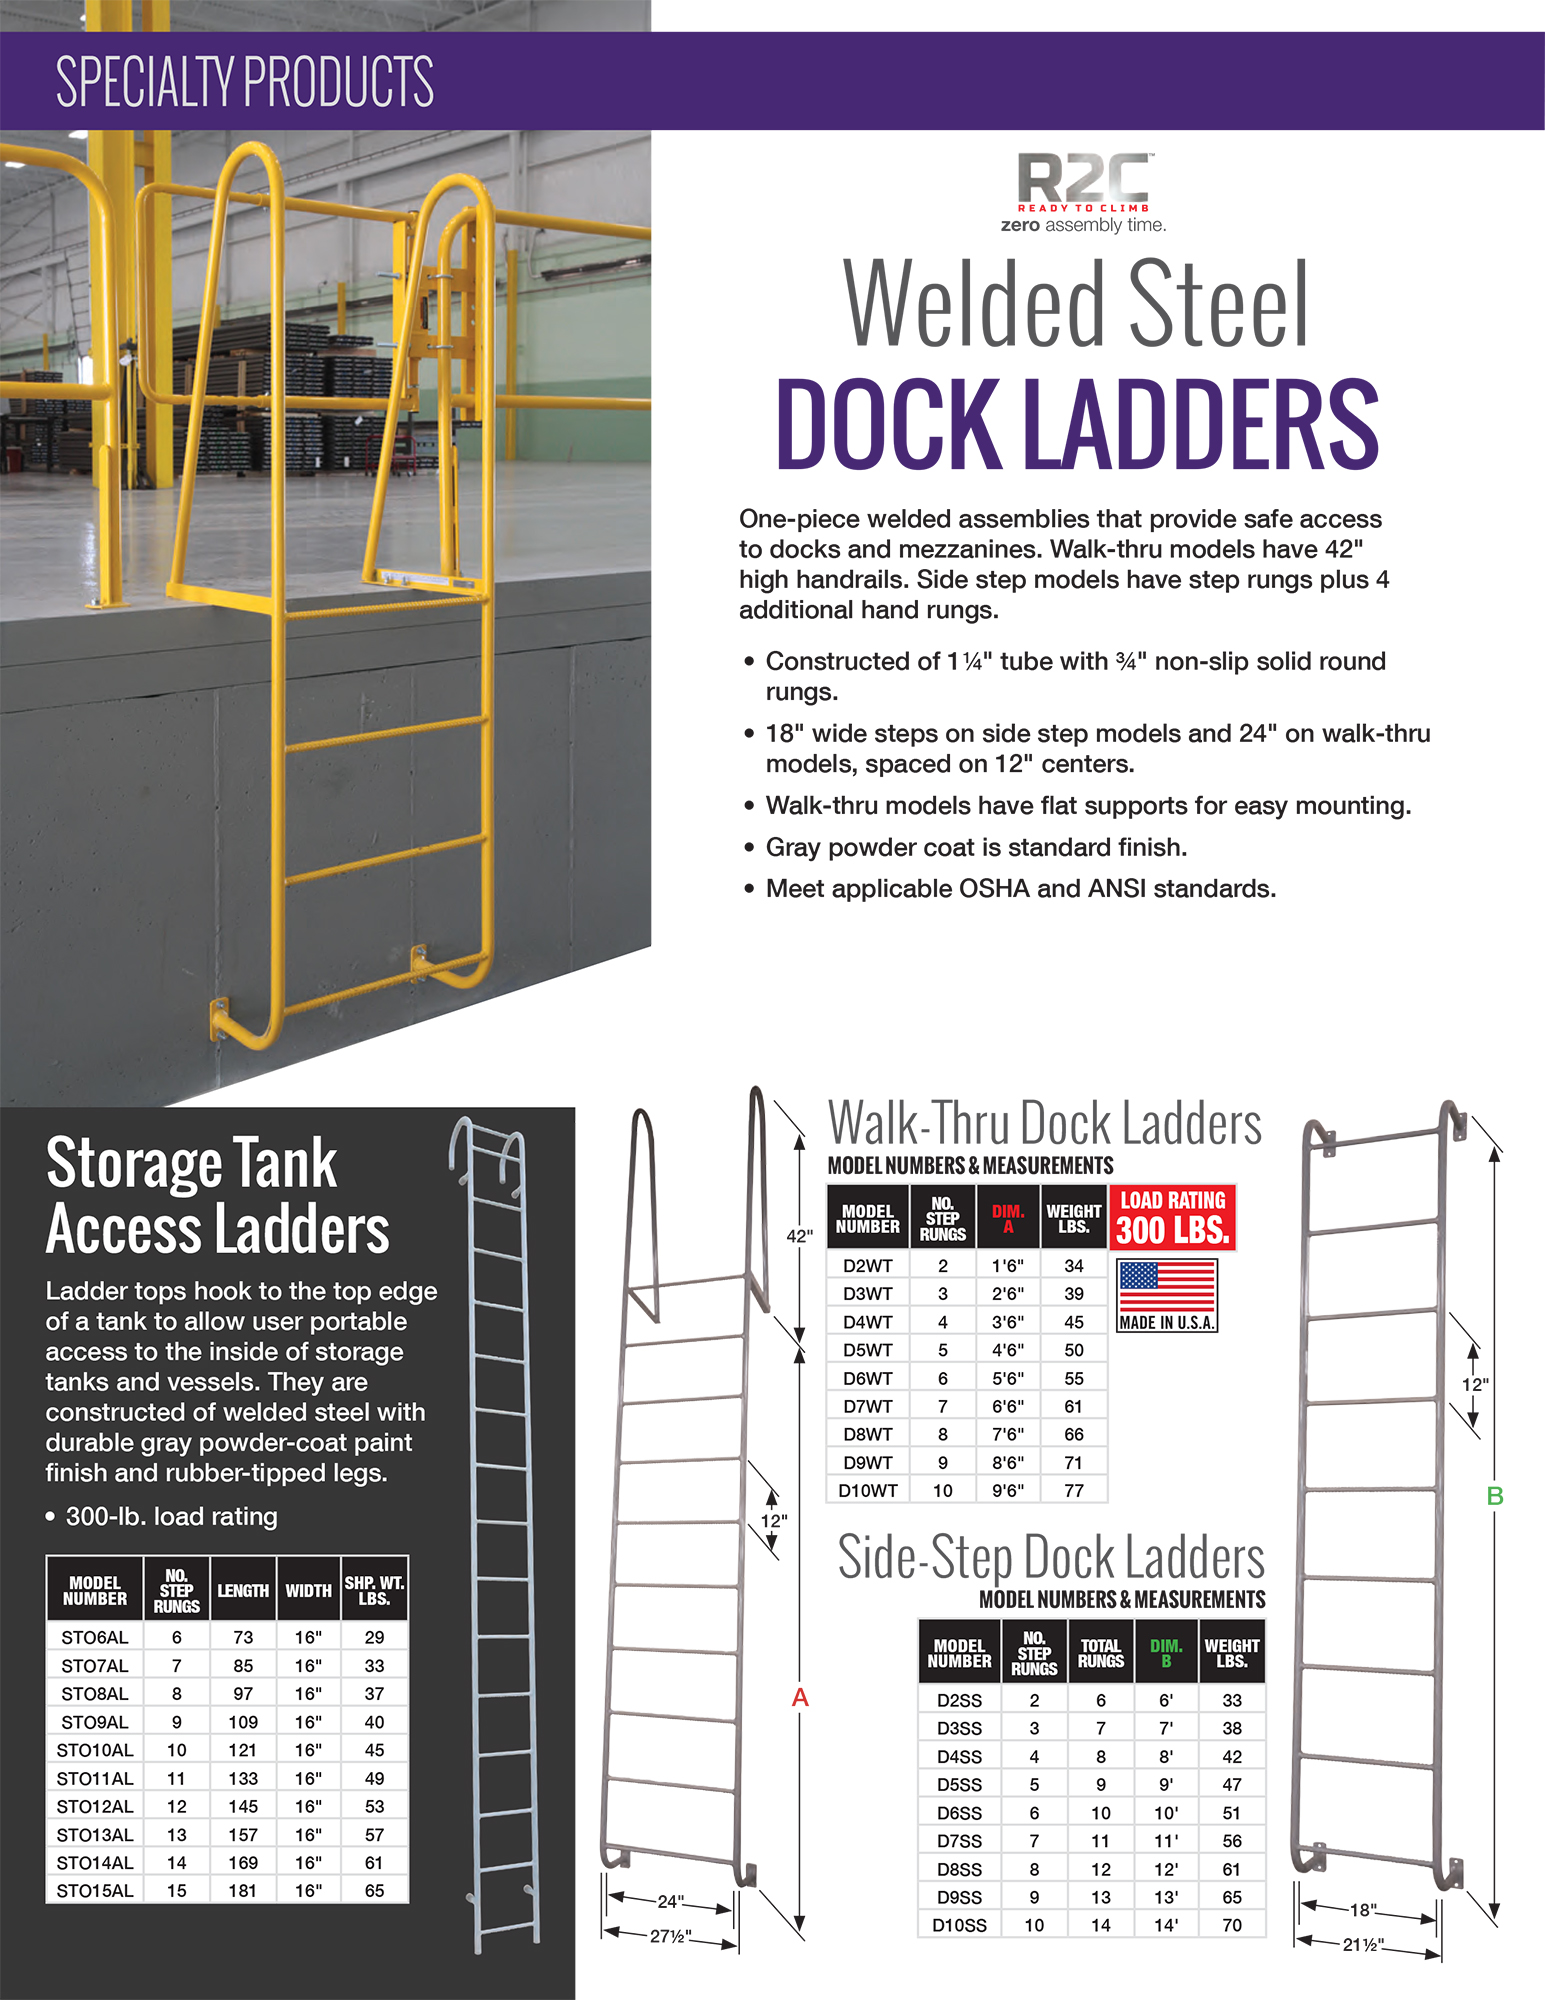 Cotterman Dock Ladder Information Sheet